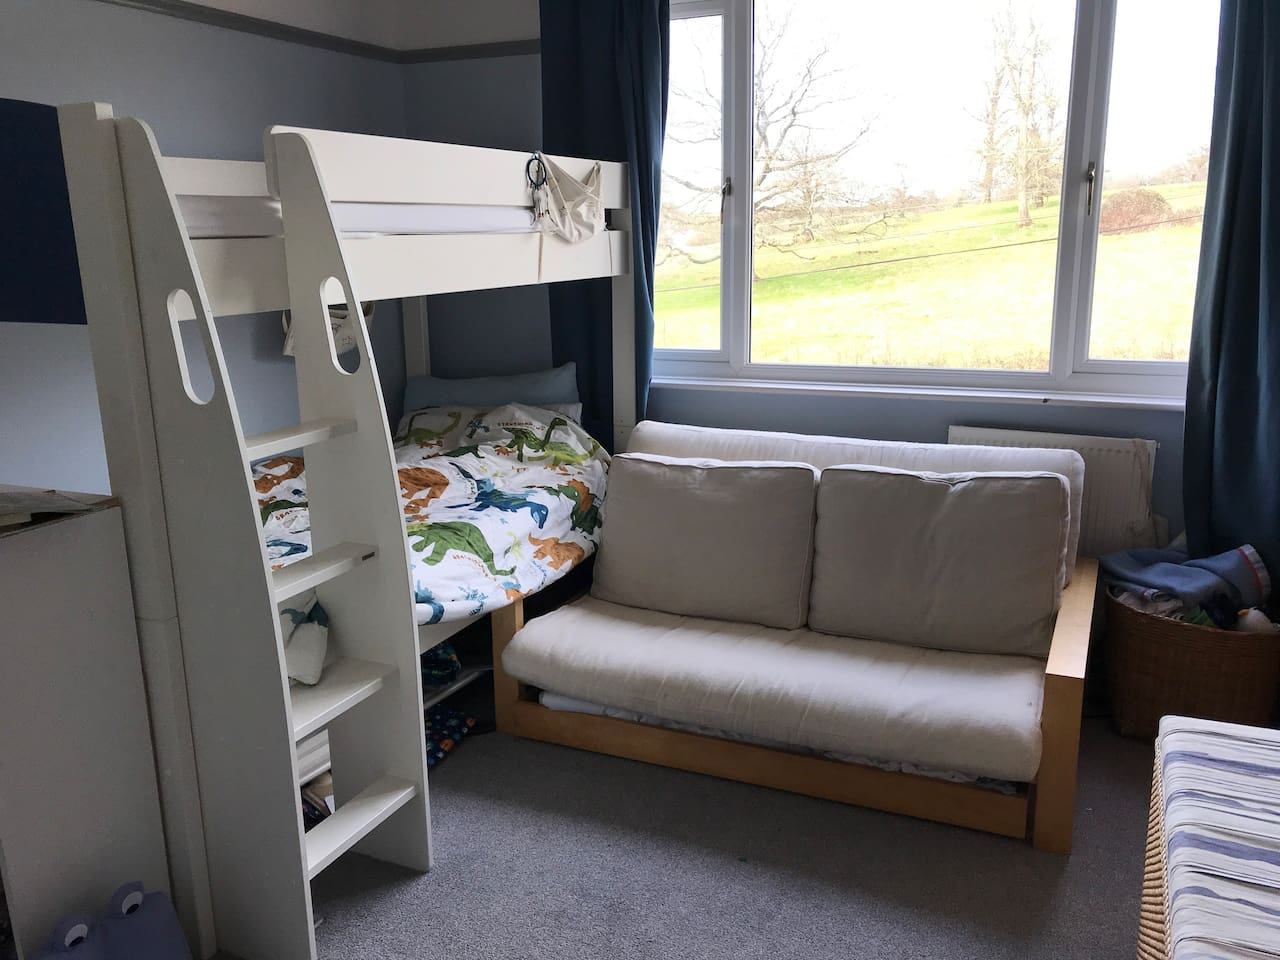 Second bedroom with bunk beds and small double futon.